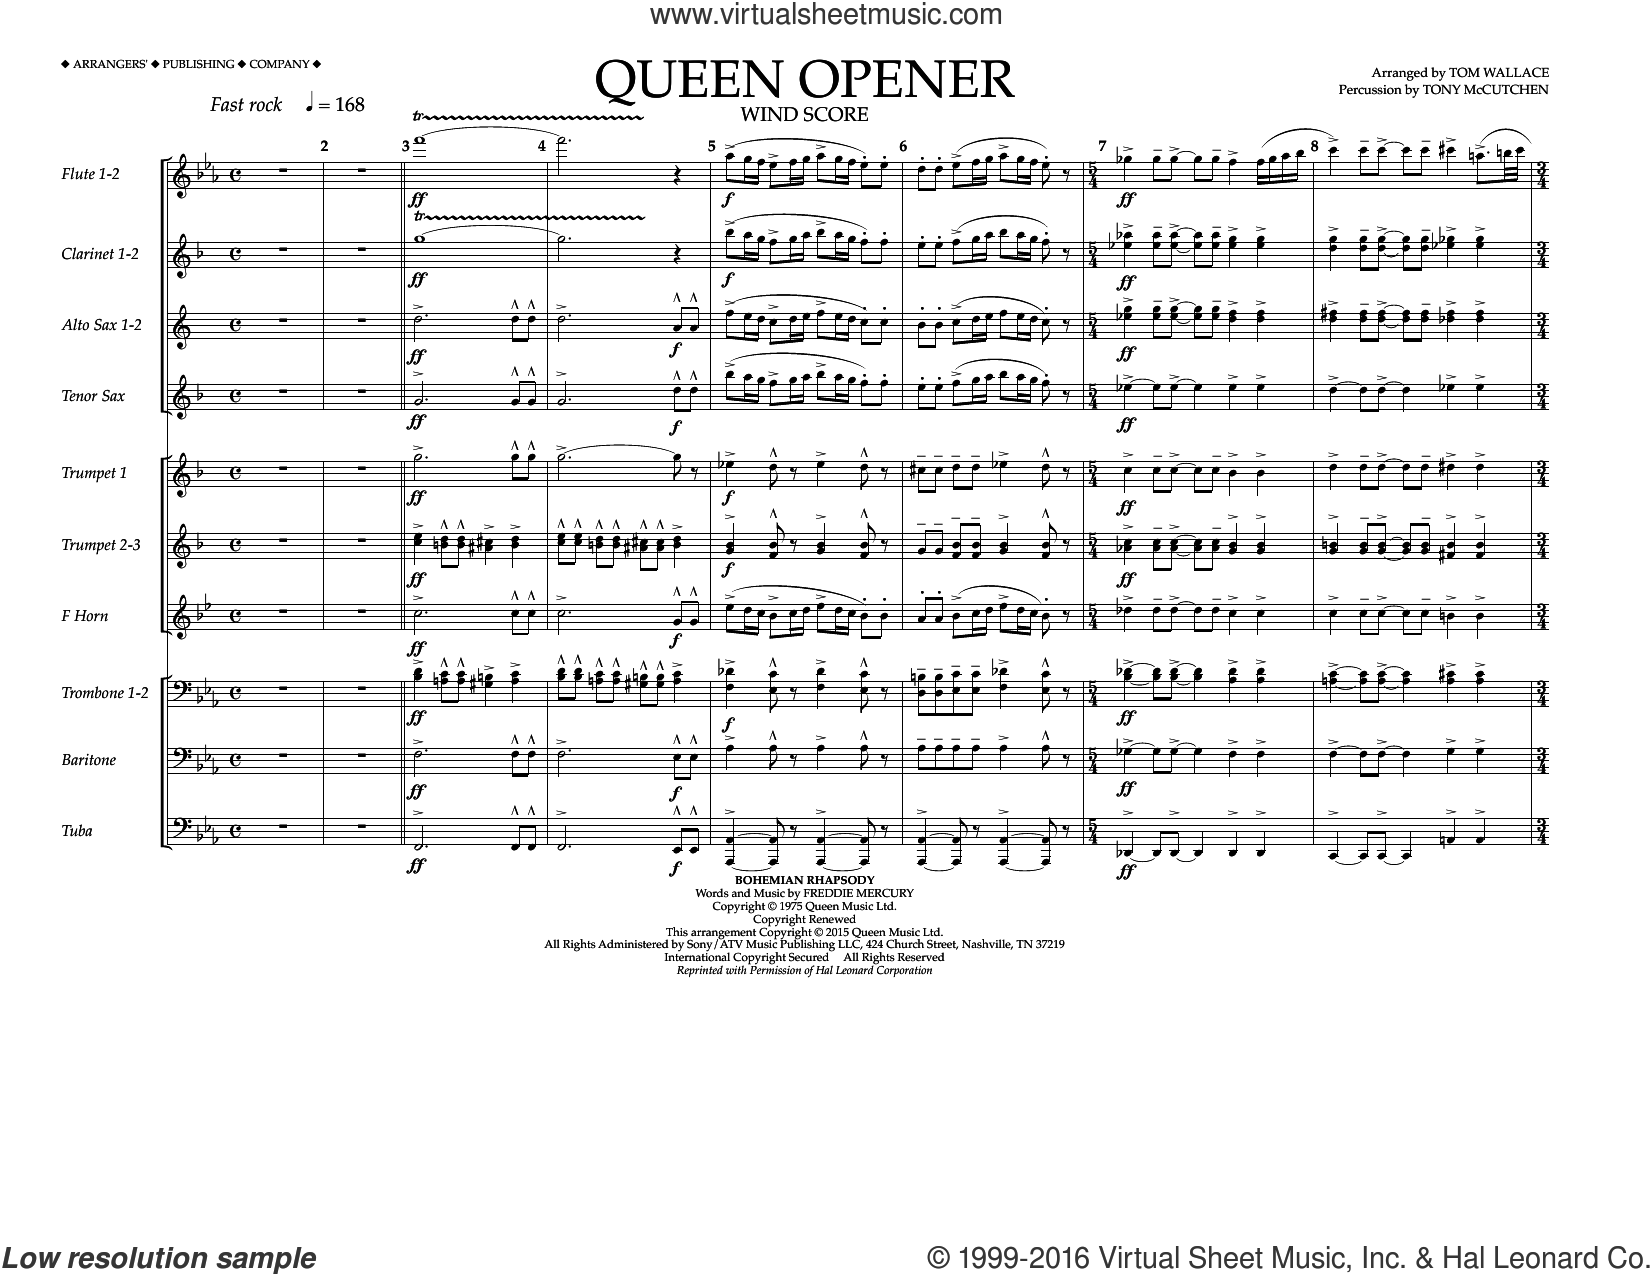 Queen Opener sheet music for marching band (wind score) by Tom Wallace and Queen. Score Image Preview.